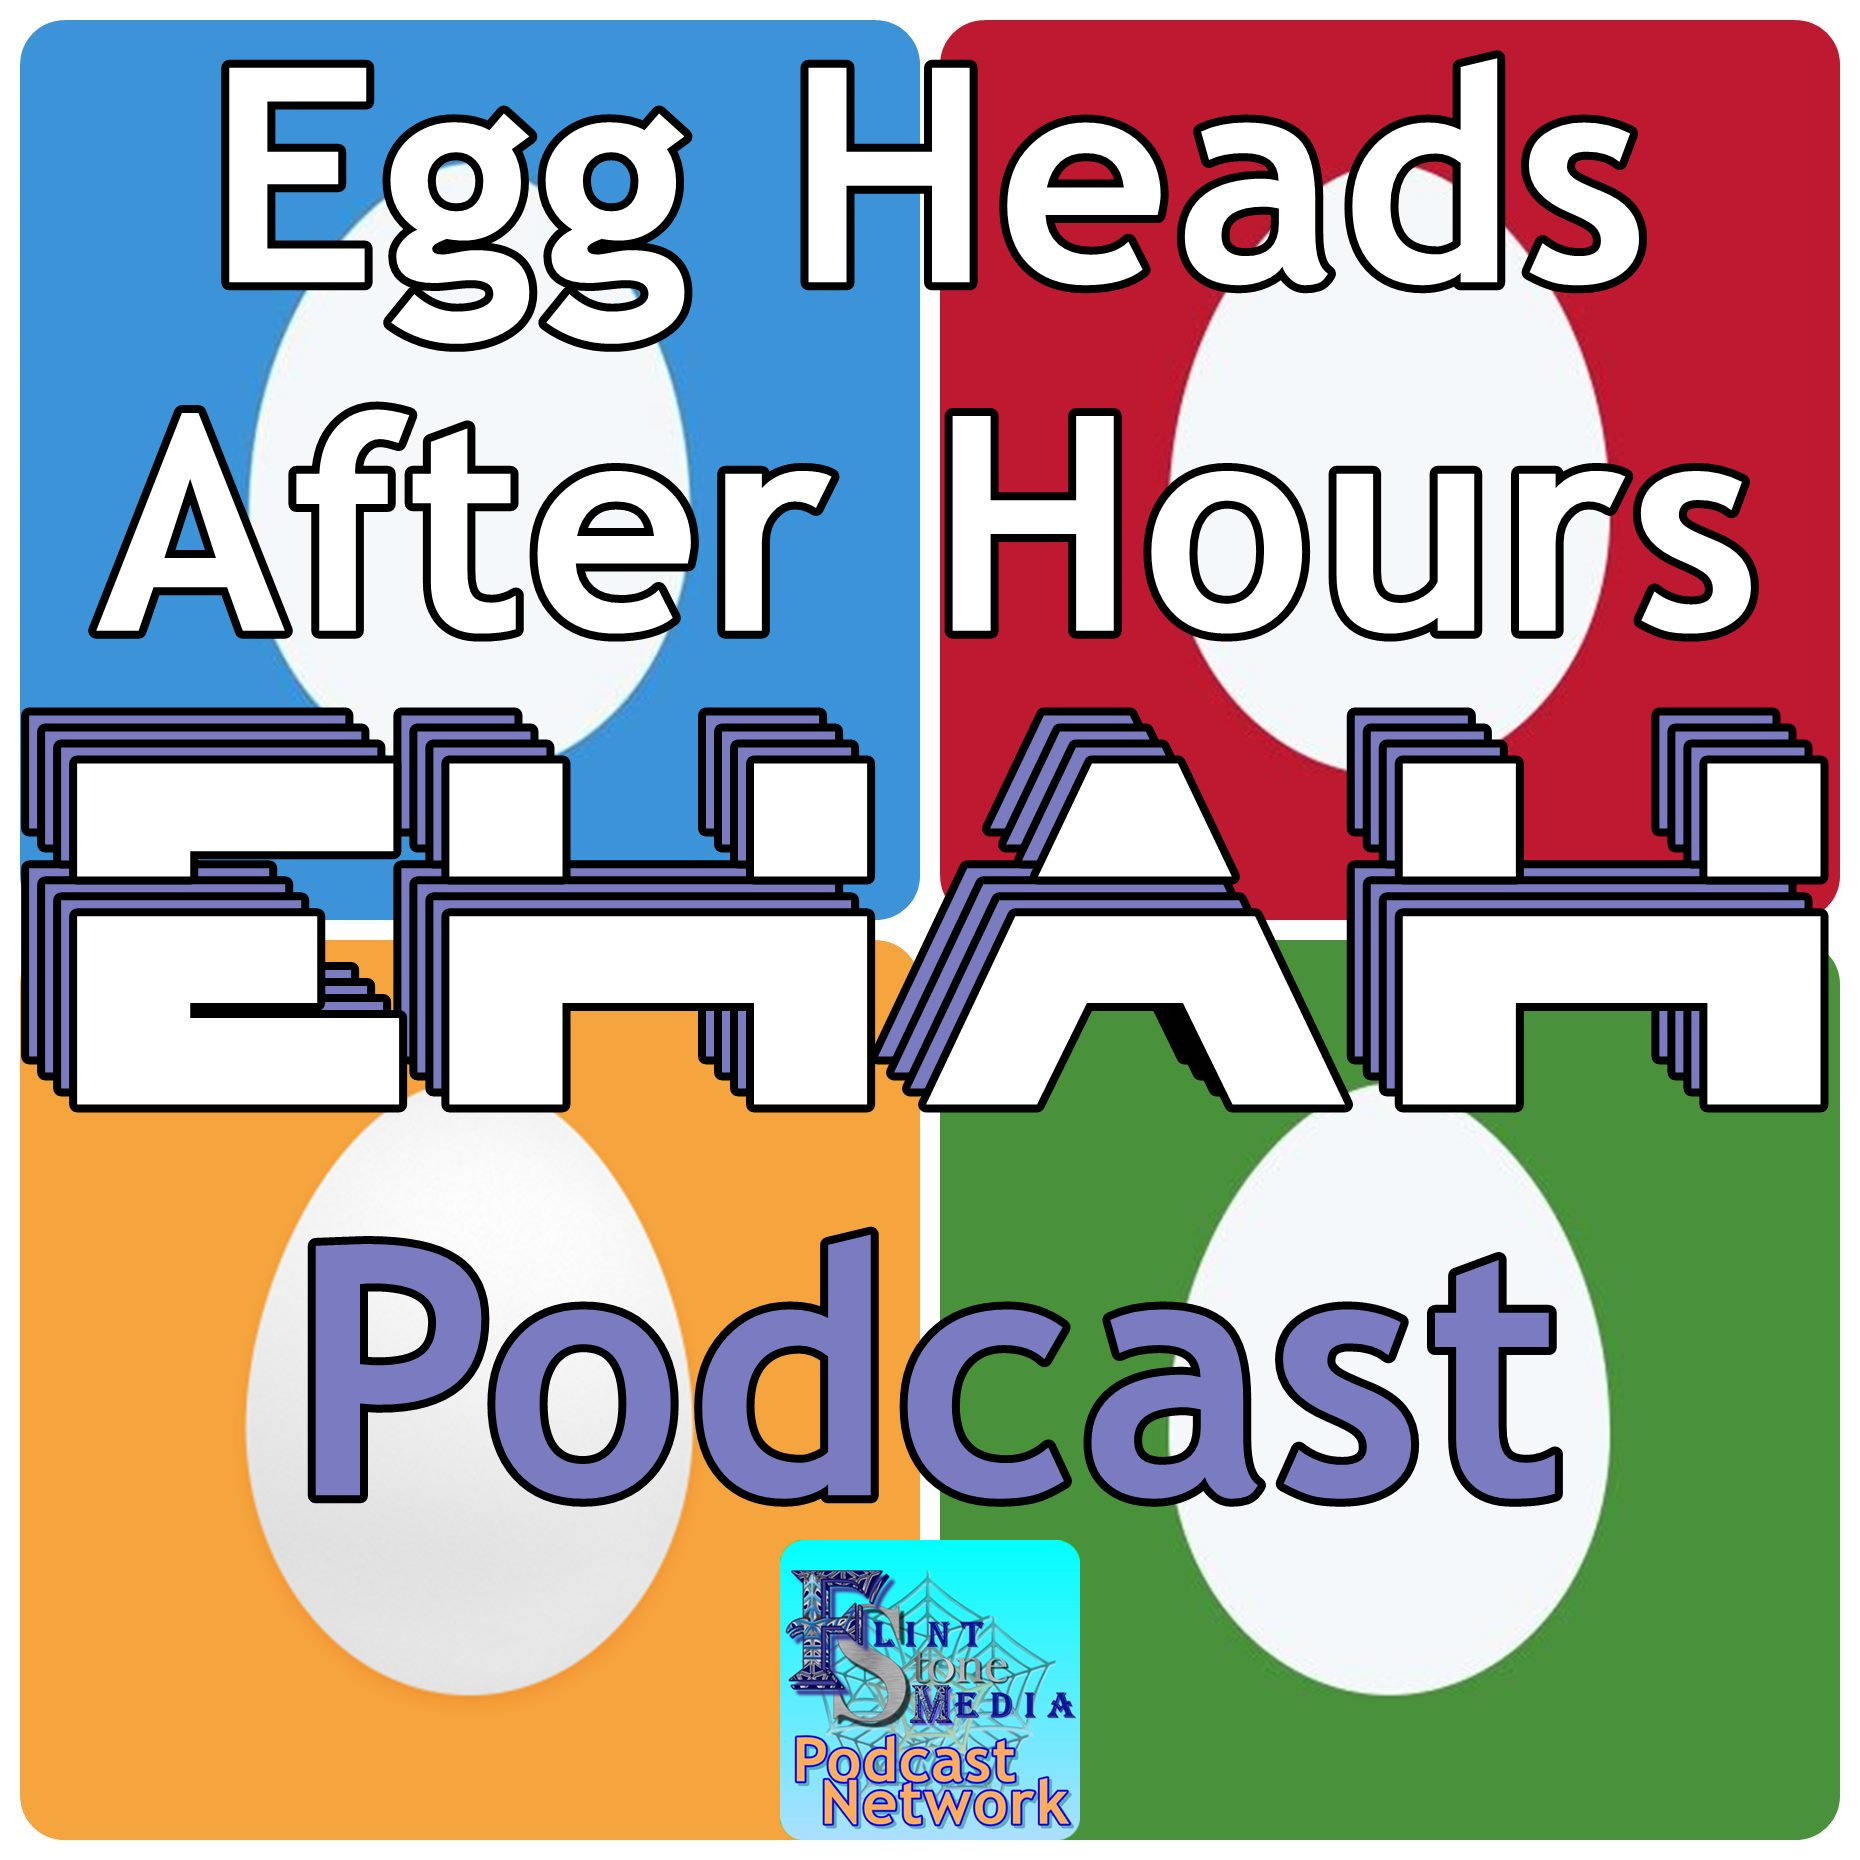 Egg Heads After Hours Podcast - Putting Tech into our Community and the Community into our Tech!